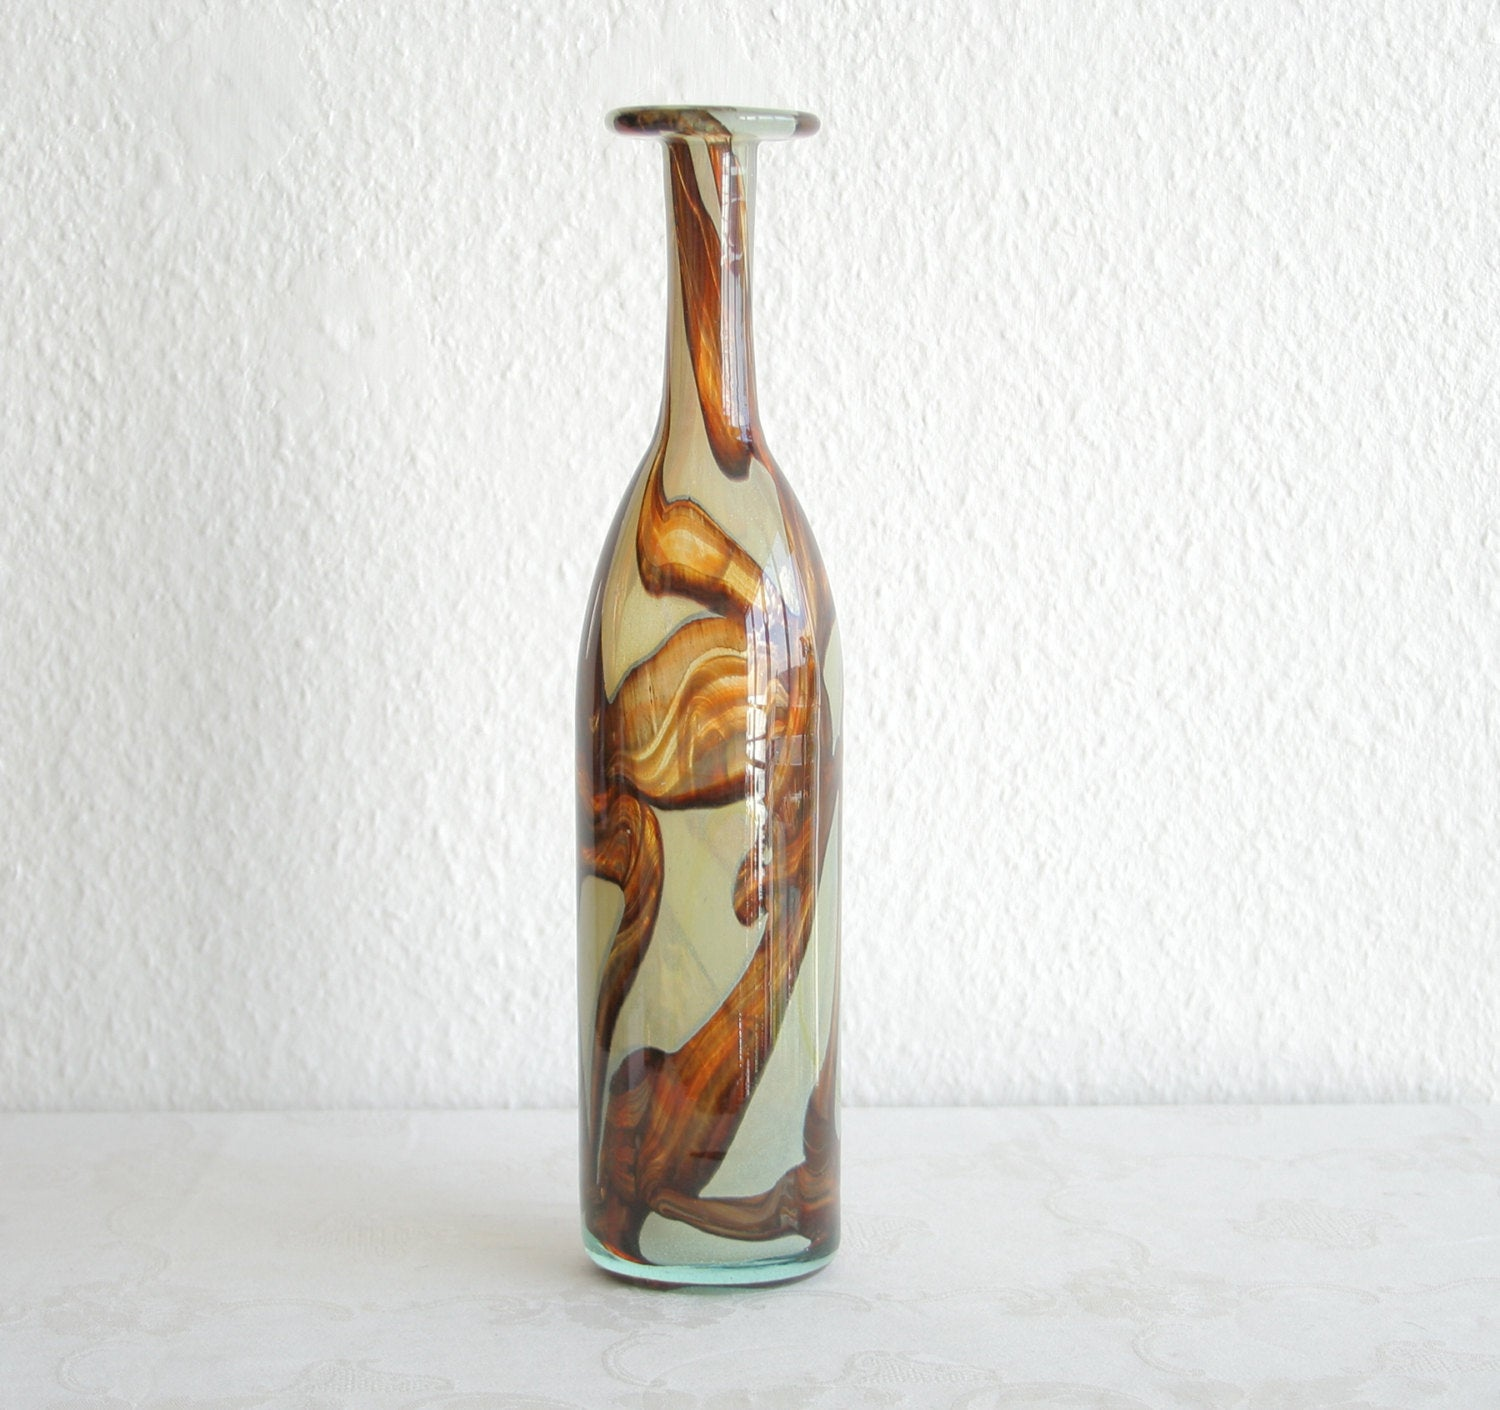 MICHAEL HARRIS Mdina Studio Tiger Pattern Glass Bottle Vase - Mollaris.com